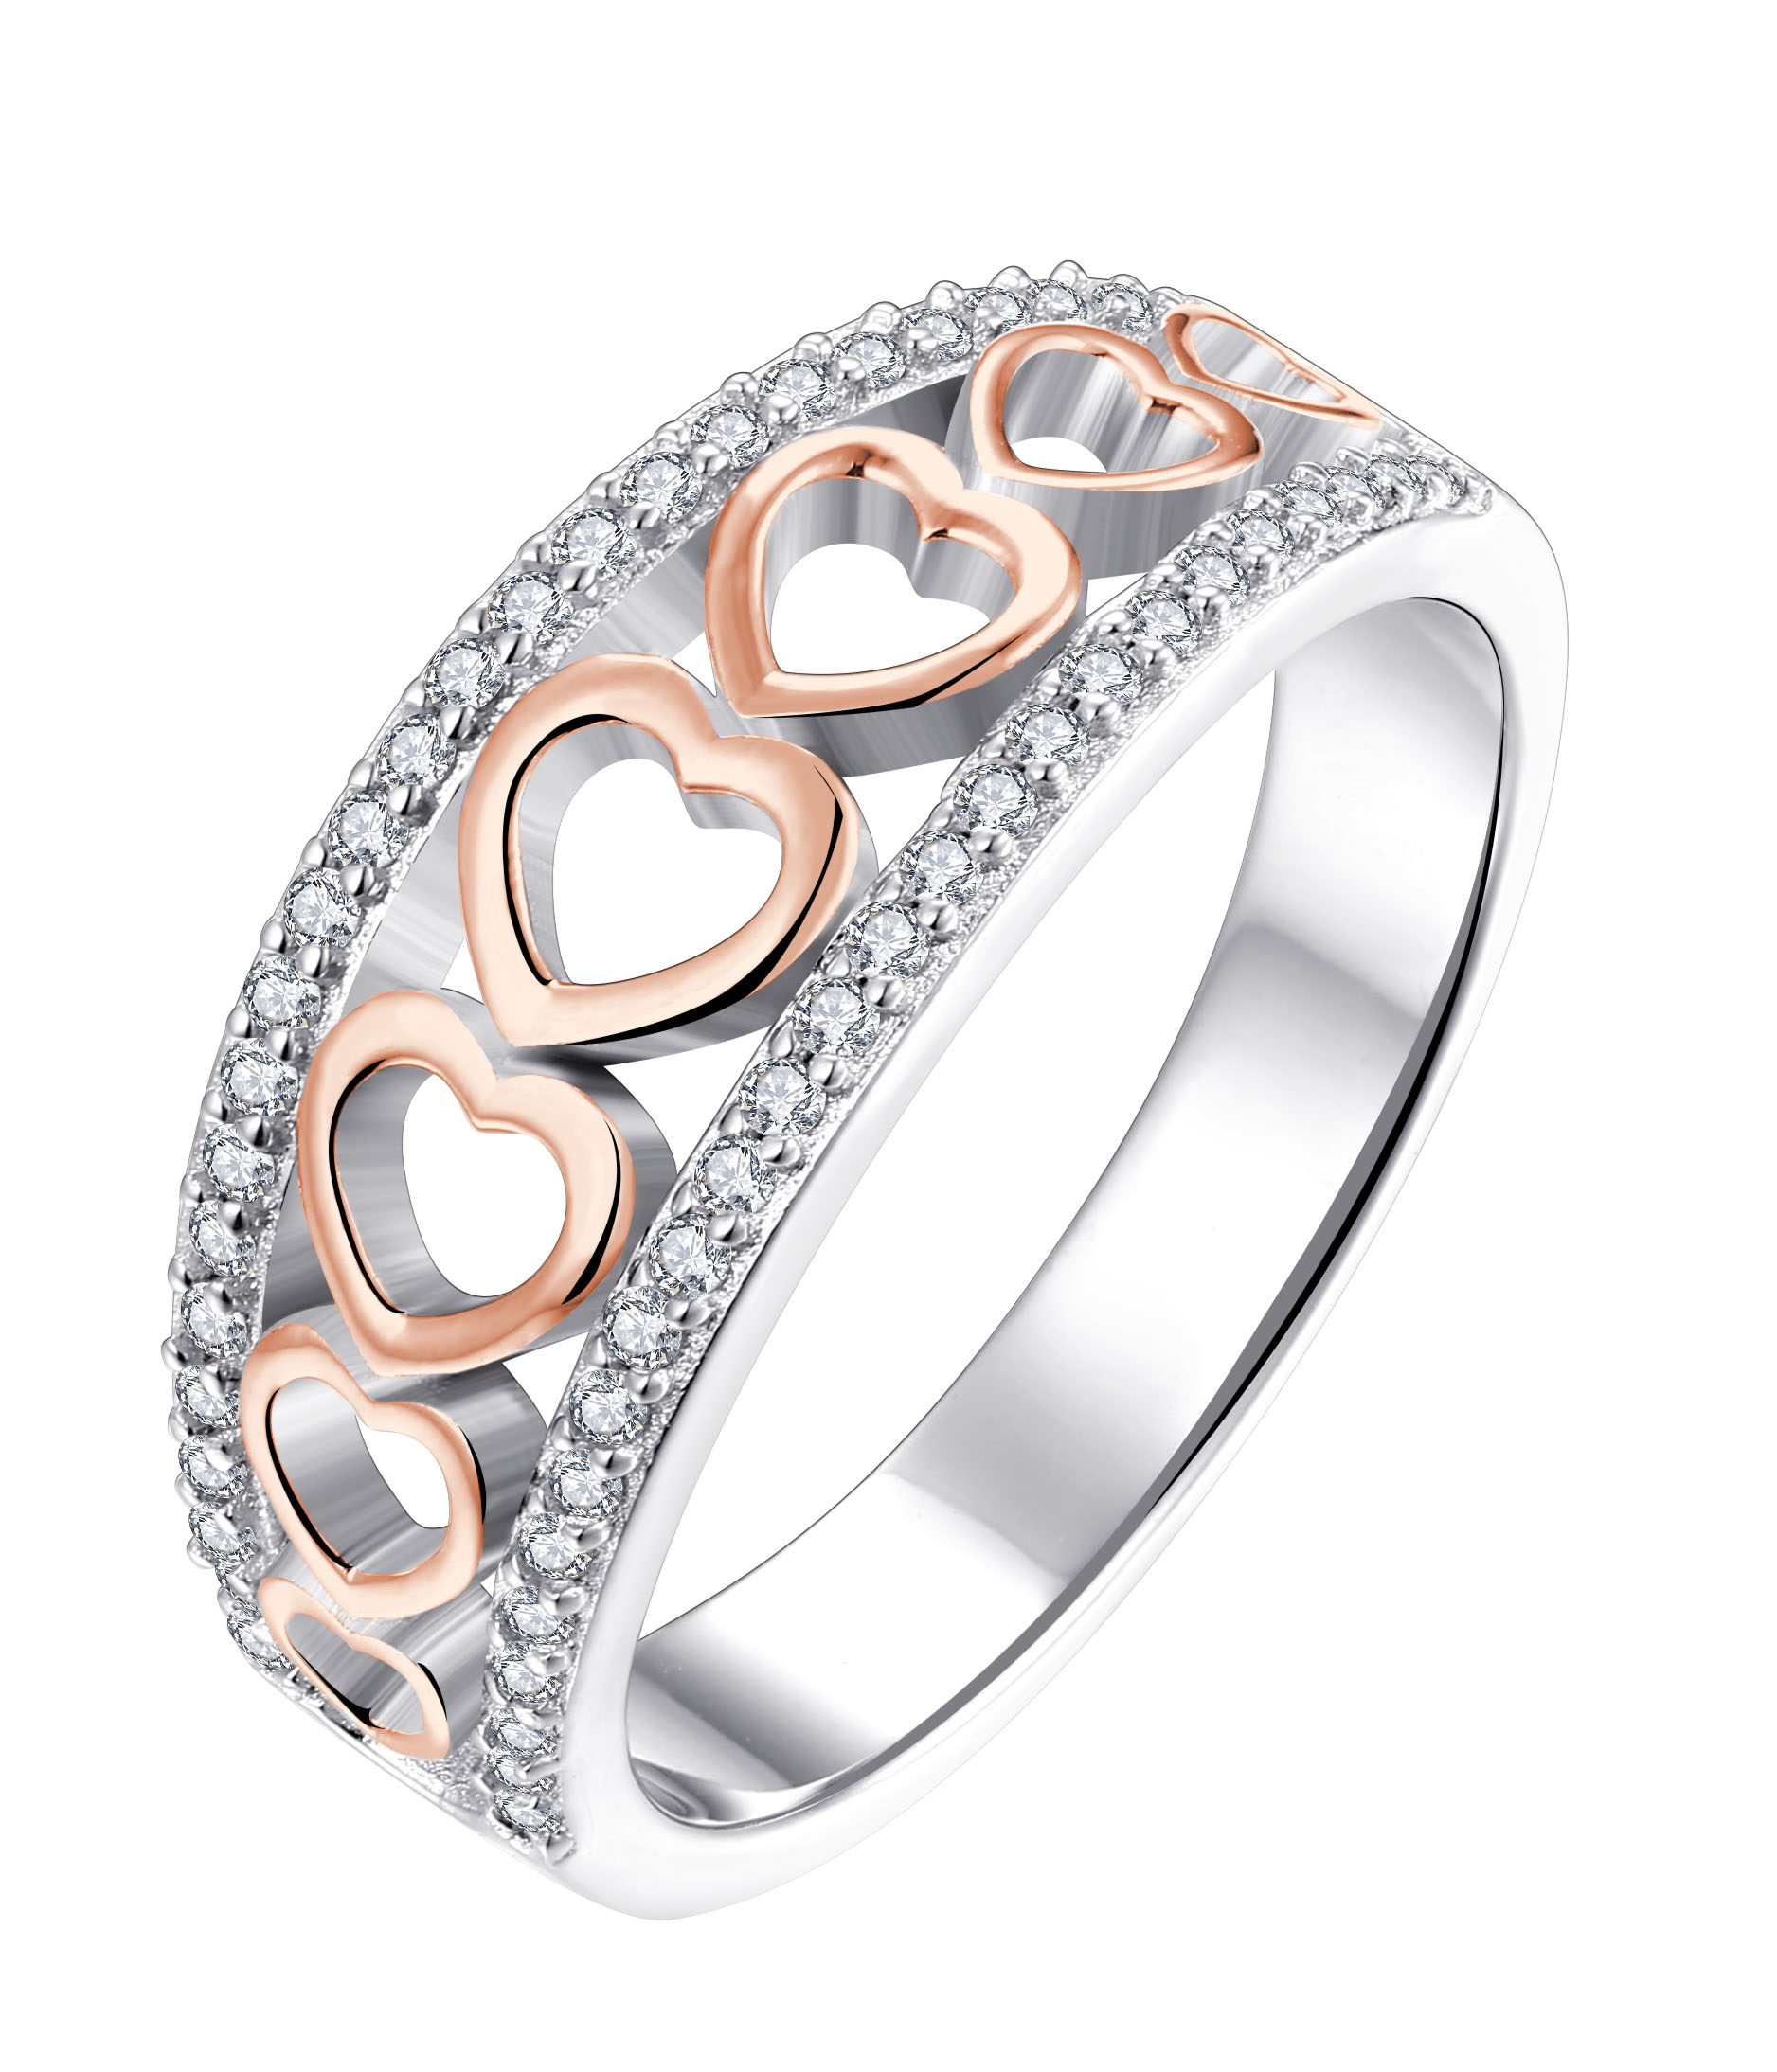 Sterling Silver and Rose Gold Plated Zirconia Graduated Open Heart Ring   *NO RESIZE*